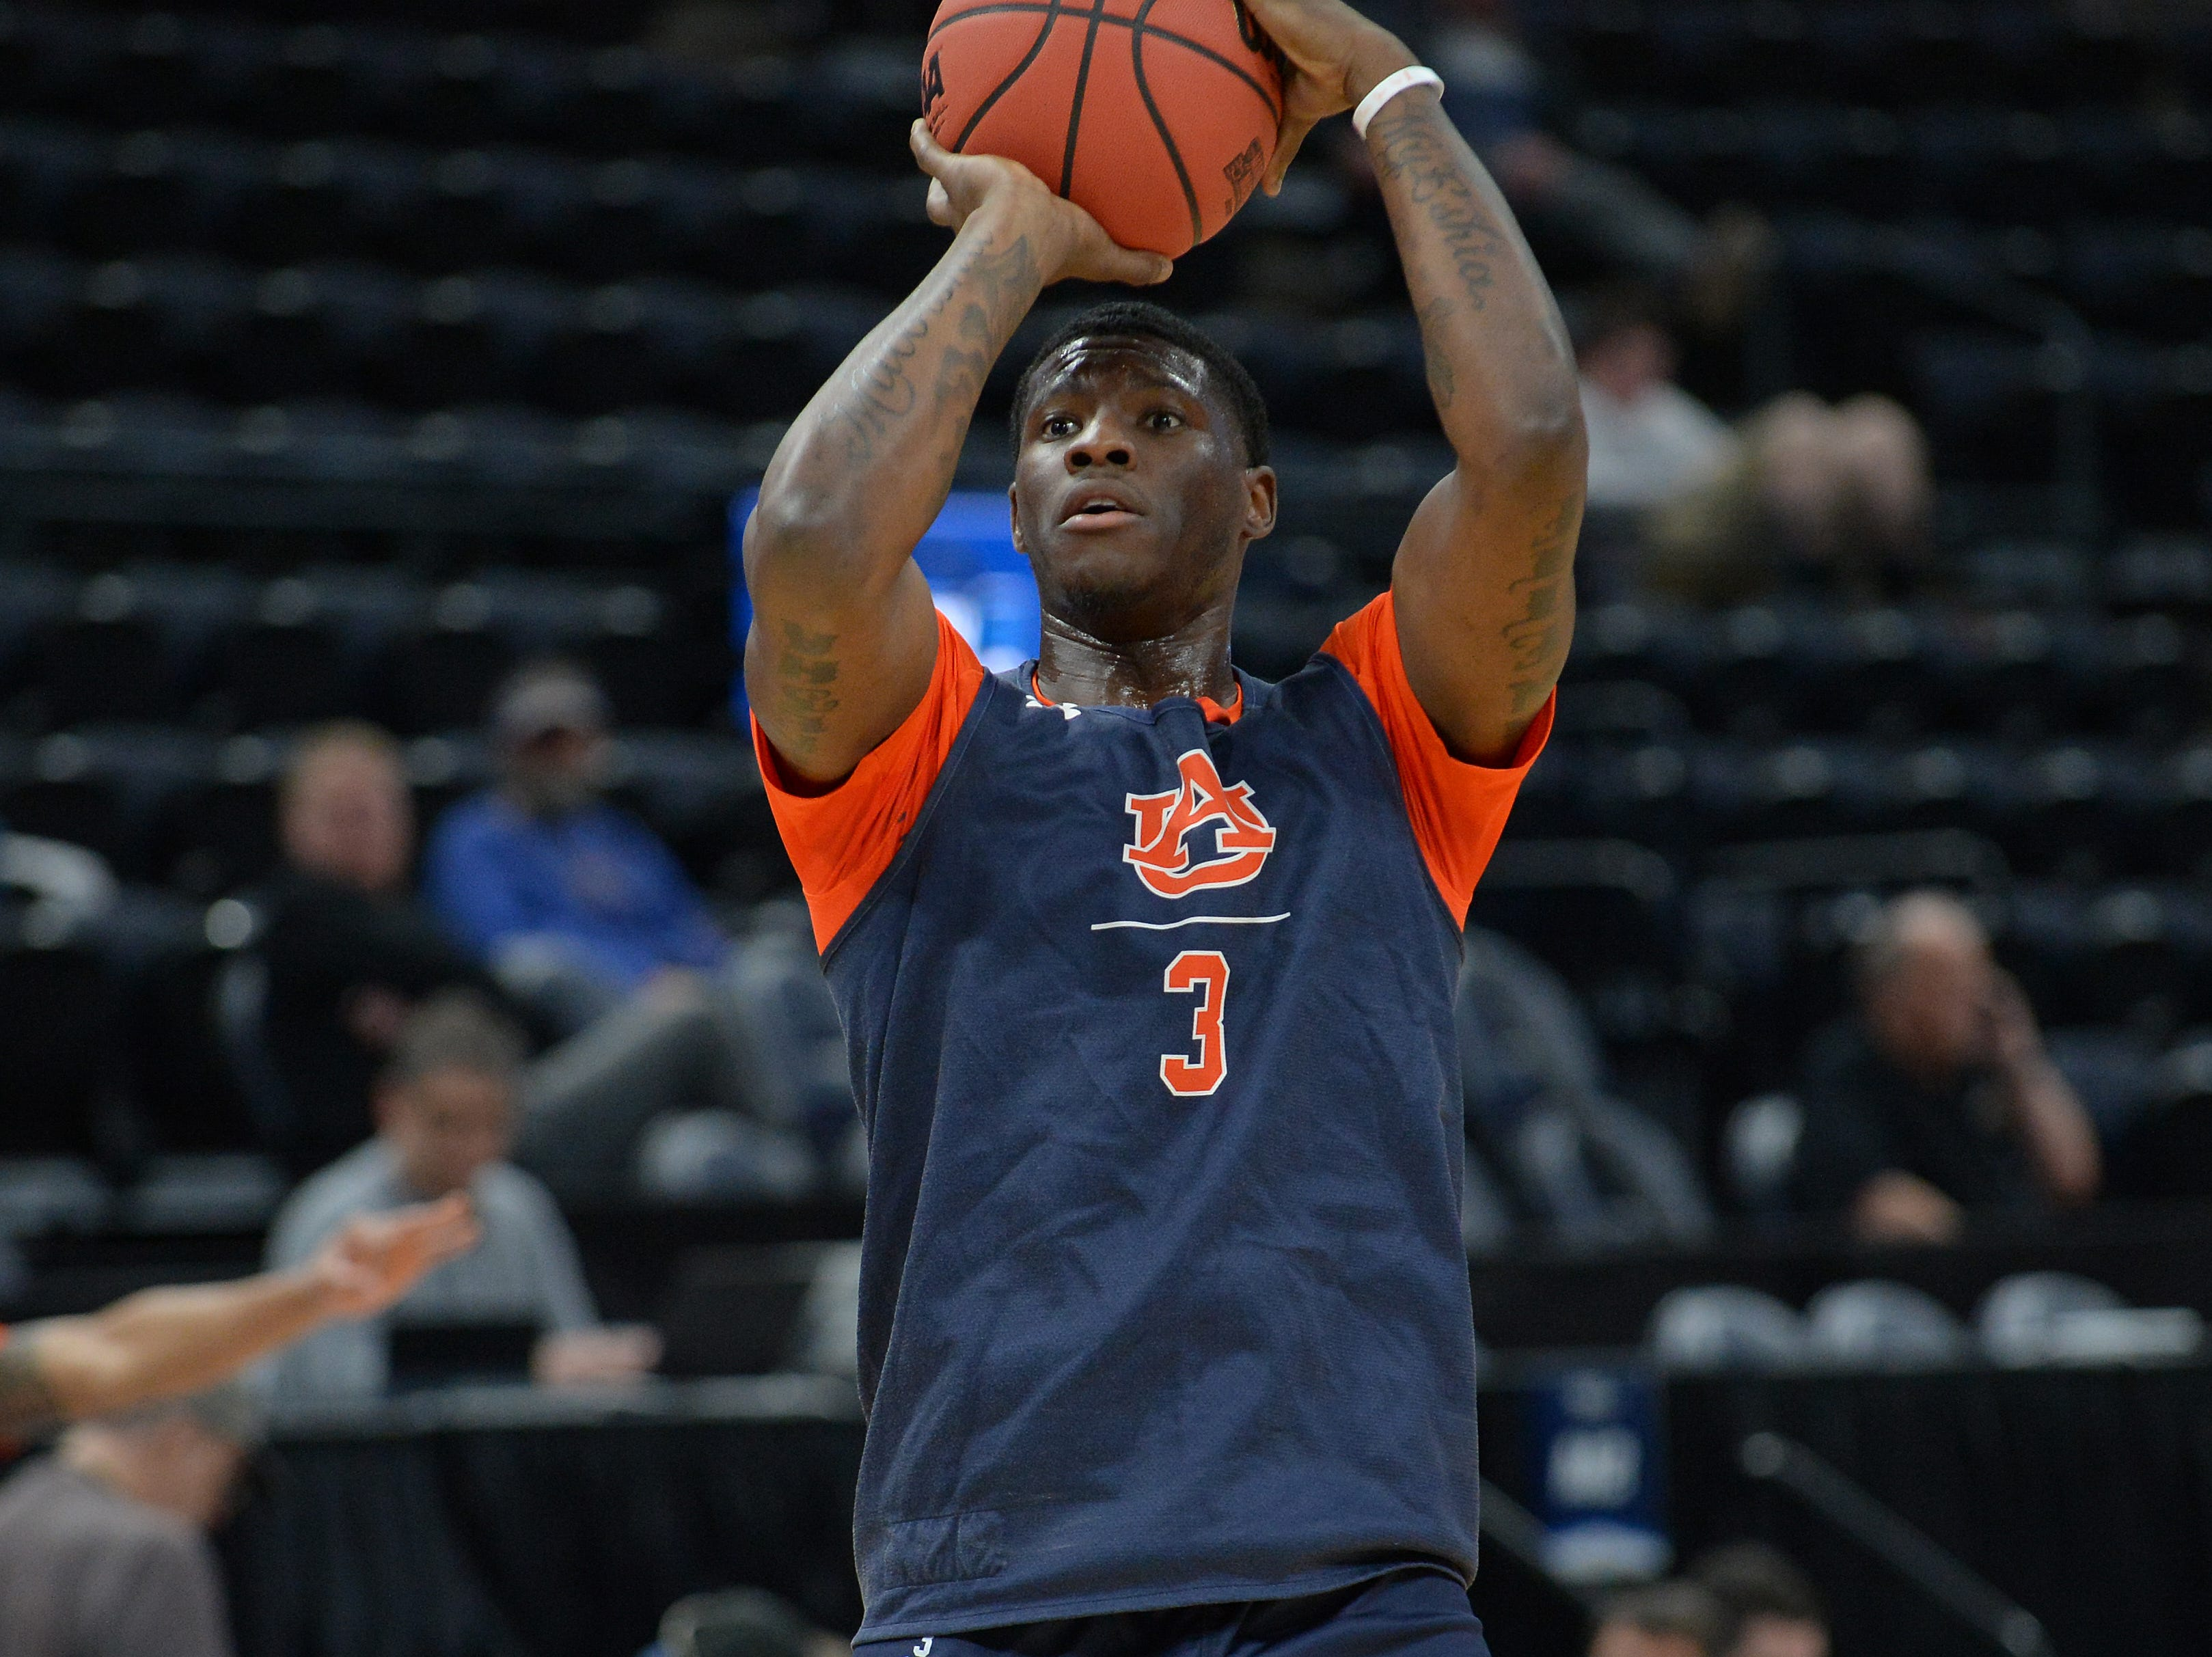 March 20, 2019; Salt Lake City, UT, USA; Auburn Tigers forward Danjel Purifoy (3) during practice before the first round of the 2019 NCAA Tournament at Vivint Smart Home Arena. Mandatory Credit: Gary A. Vasquez-USA TODAY Sports